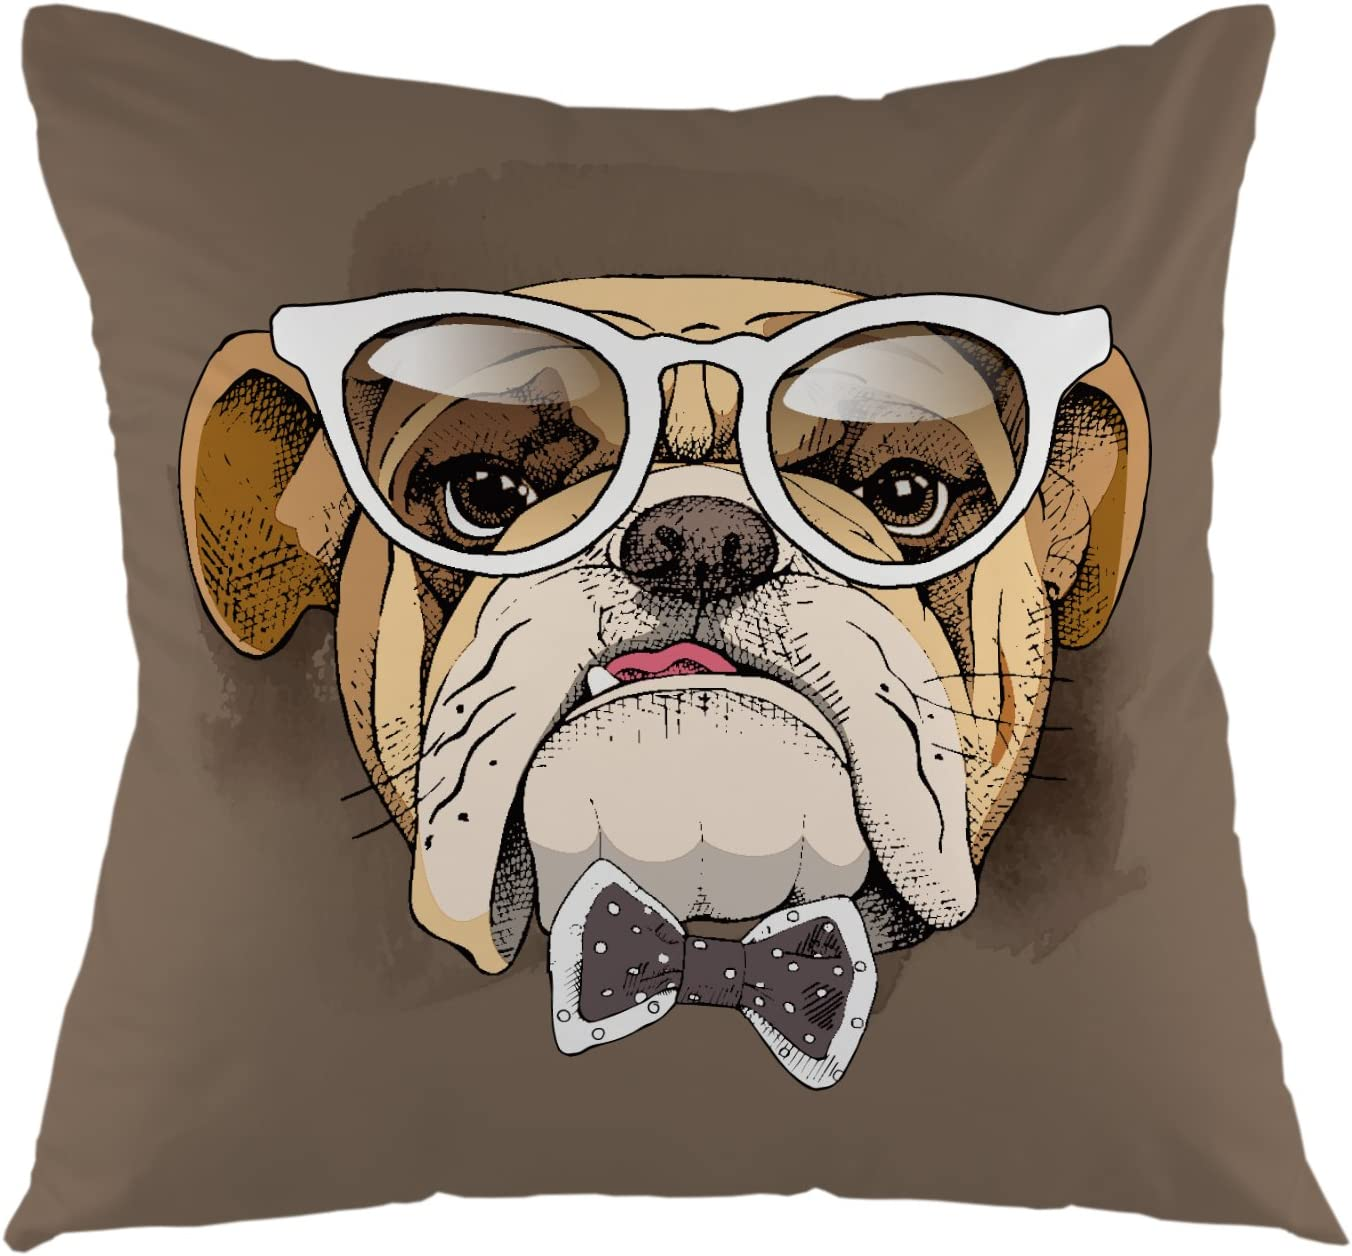 Amazon Com Ofloral Decorative Throw Pillow Cover Lovely Animal Pet Dogs Bulldog In Glasses Square Pillow Case Cushion Cover For Sofa Couch Home Bedroom Living Room Decoration 18 X 18 Inch Yellow White